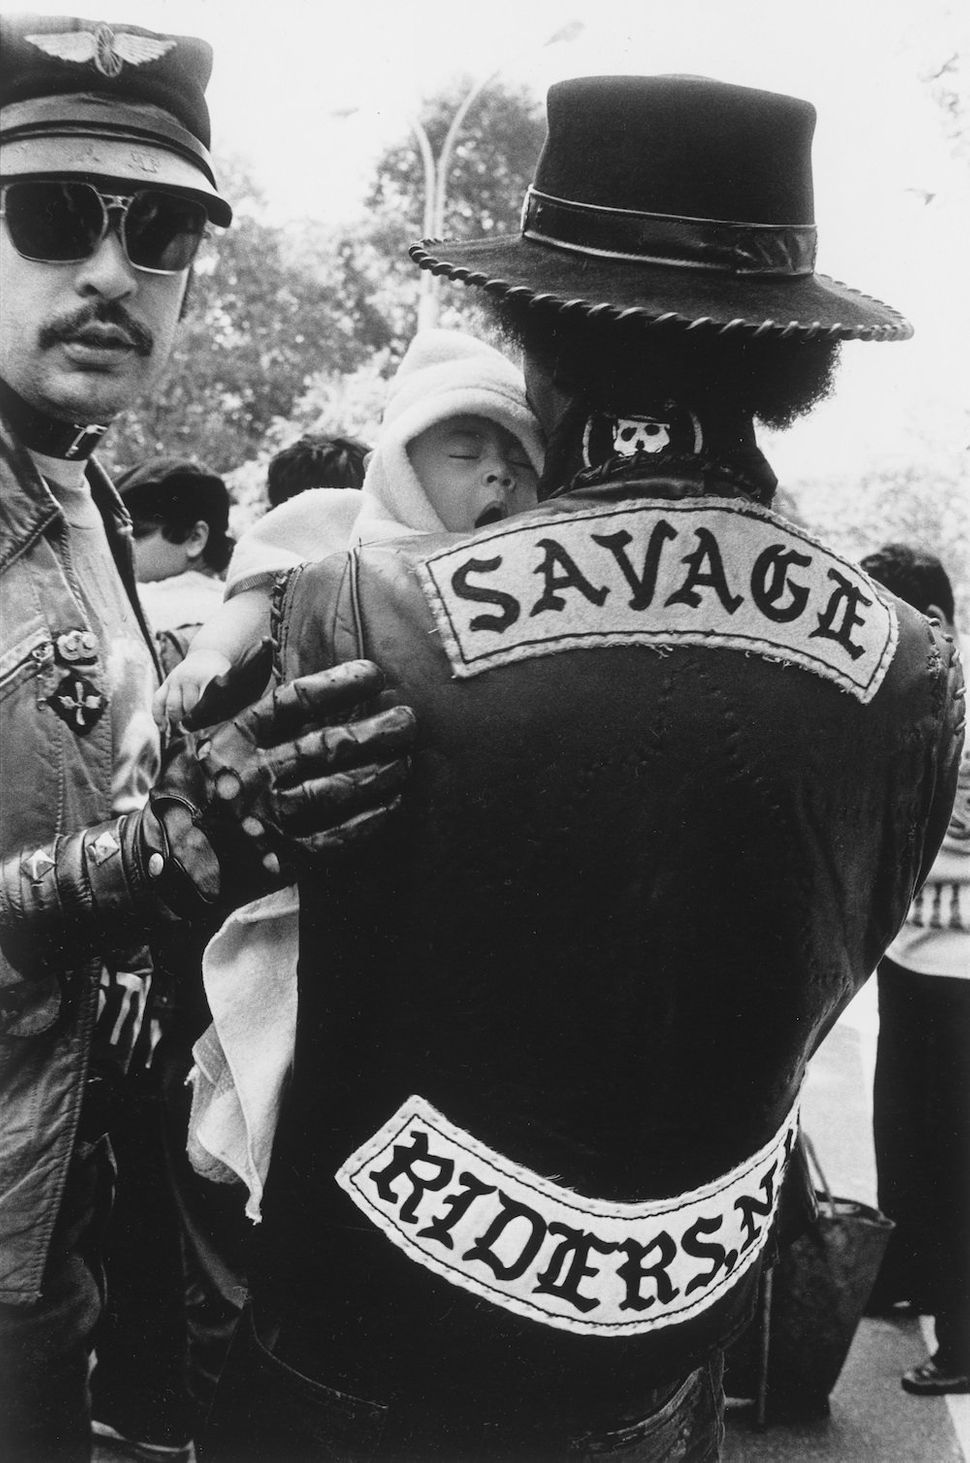 Savage-Riders at The Puertican Day Parade, 1980